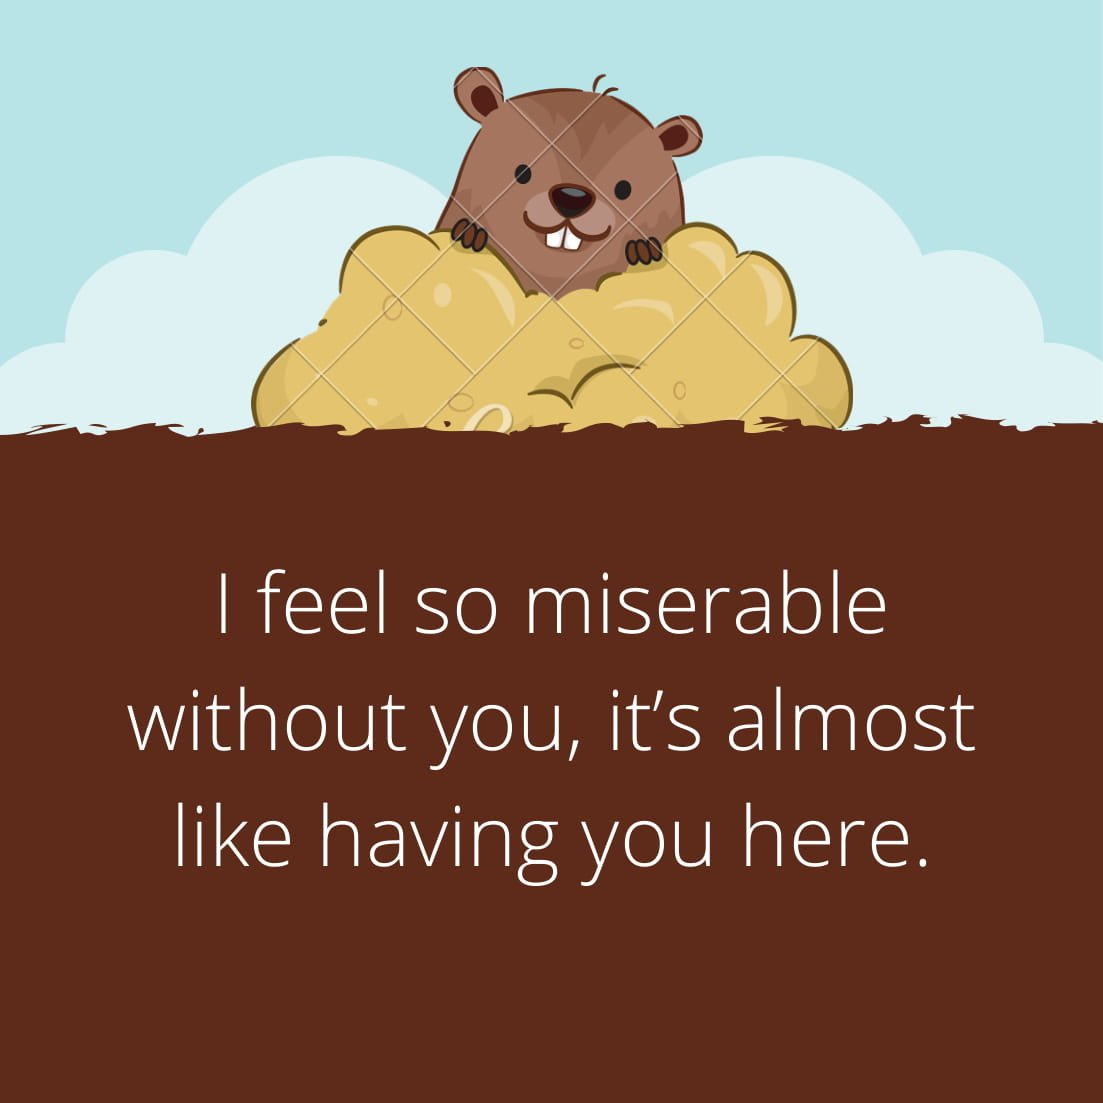 I feel so miserable without you, it's almost like having you here.